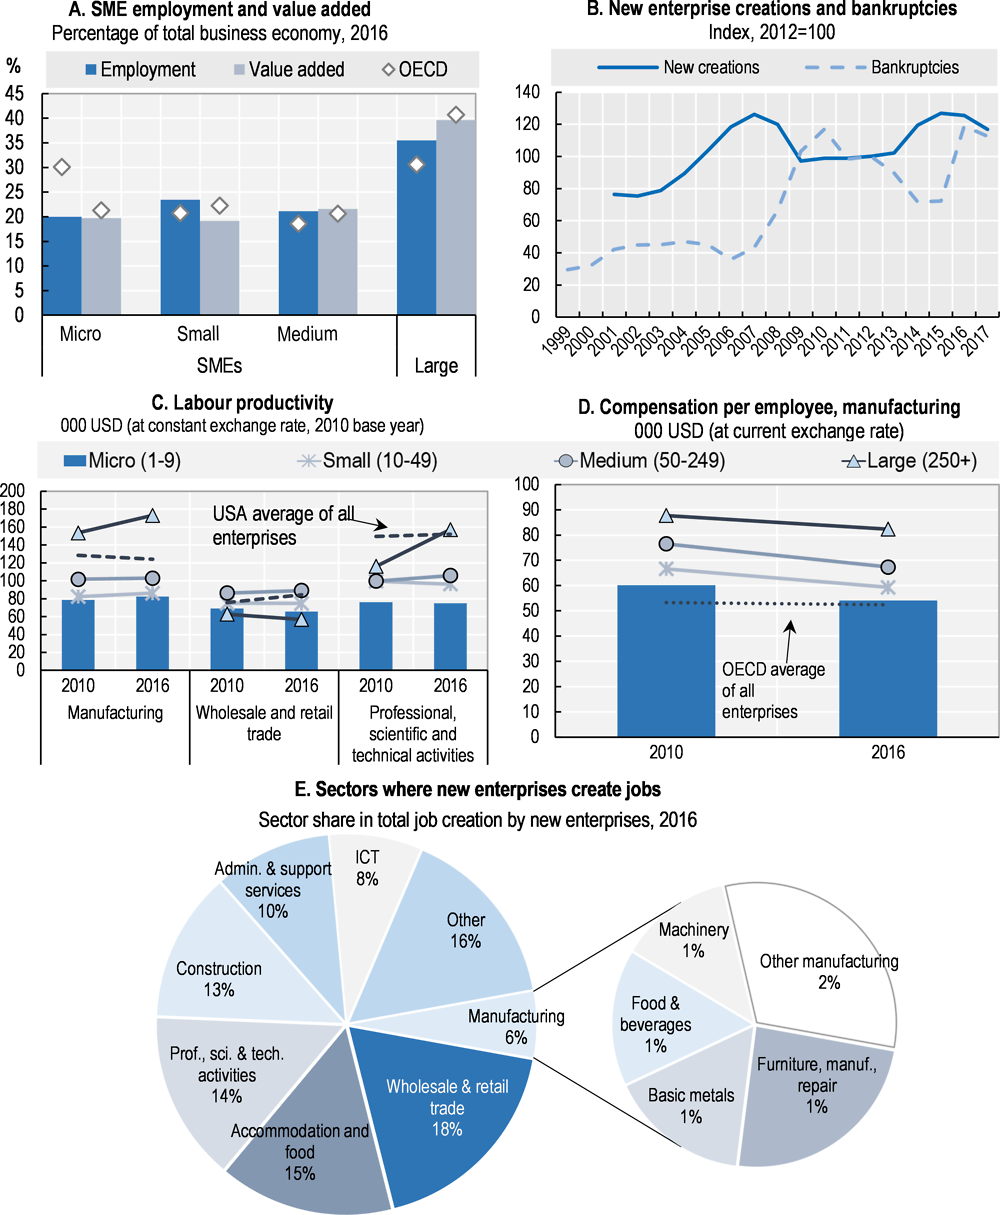 Figure 15.1. Structure and performance of the SME sector in Denmark